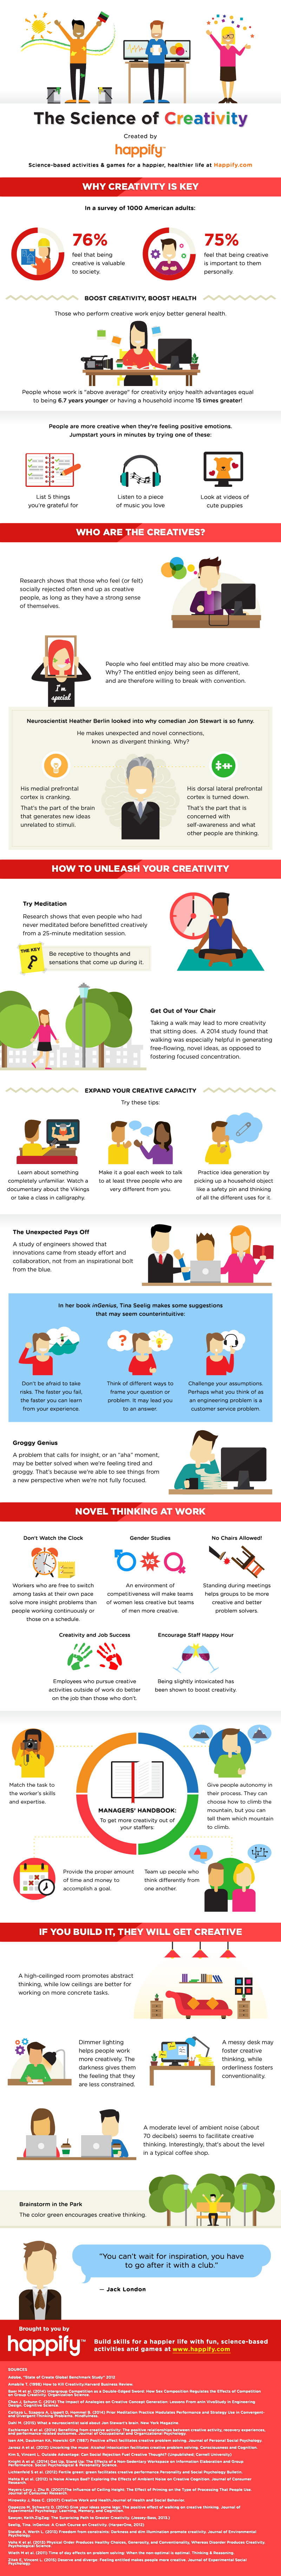 Infographic 25 Ways To Unleash Your Creativity Creative Thinking Business Infographic Infographic